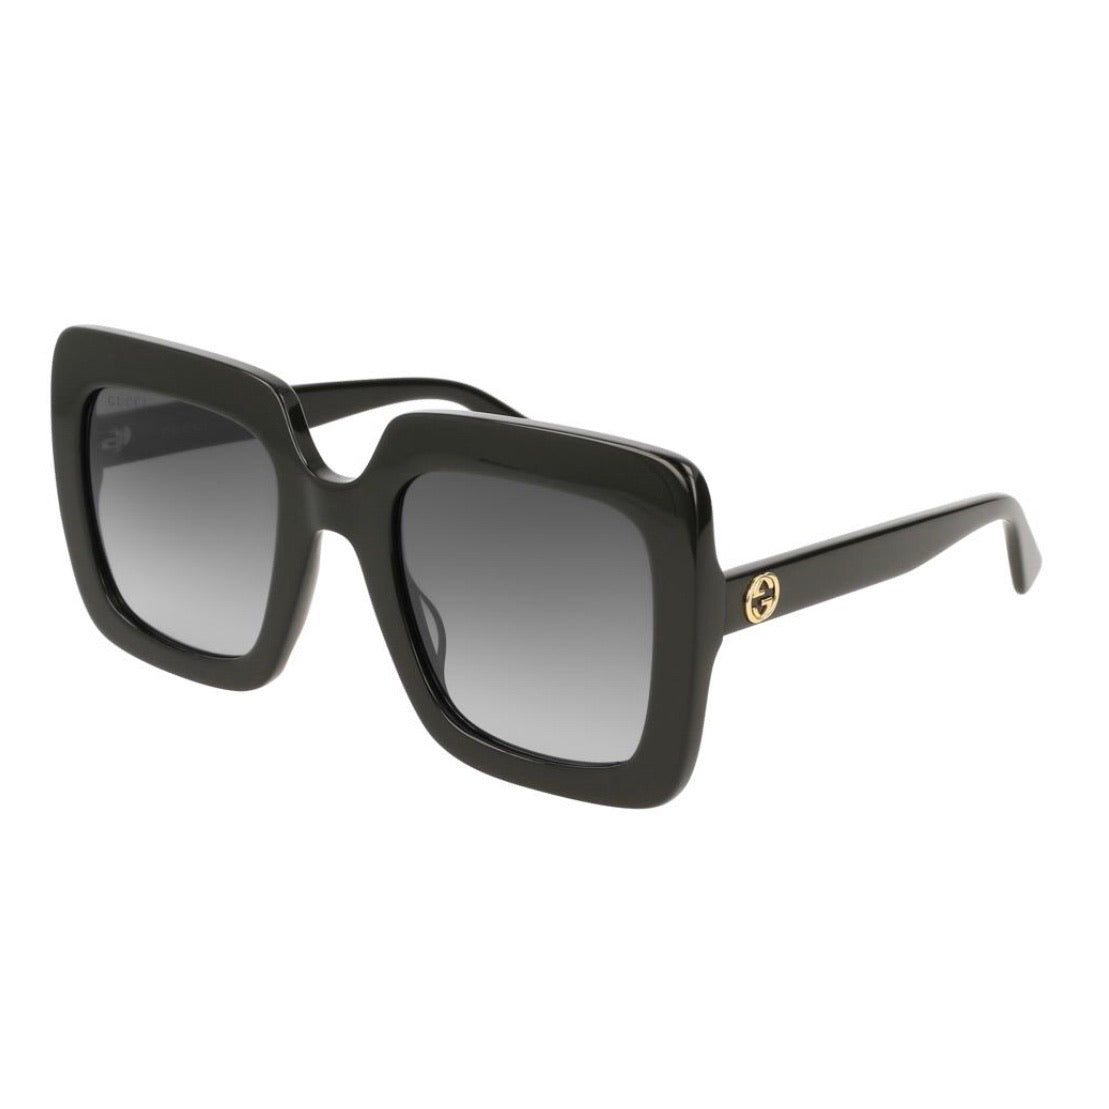 Gucci GG0328S Acetate Sunglasses